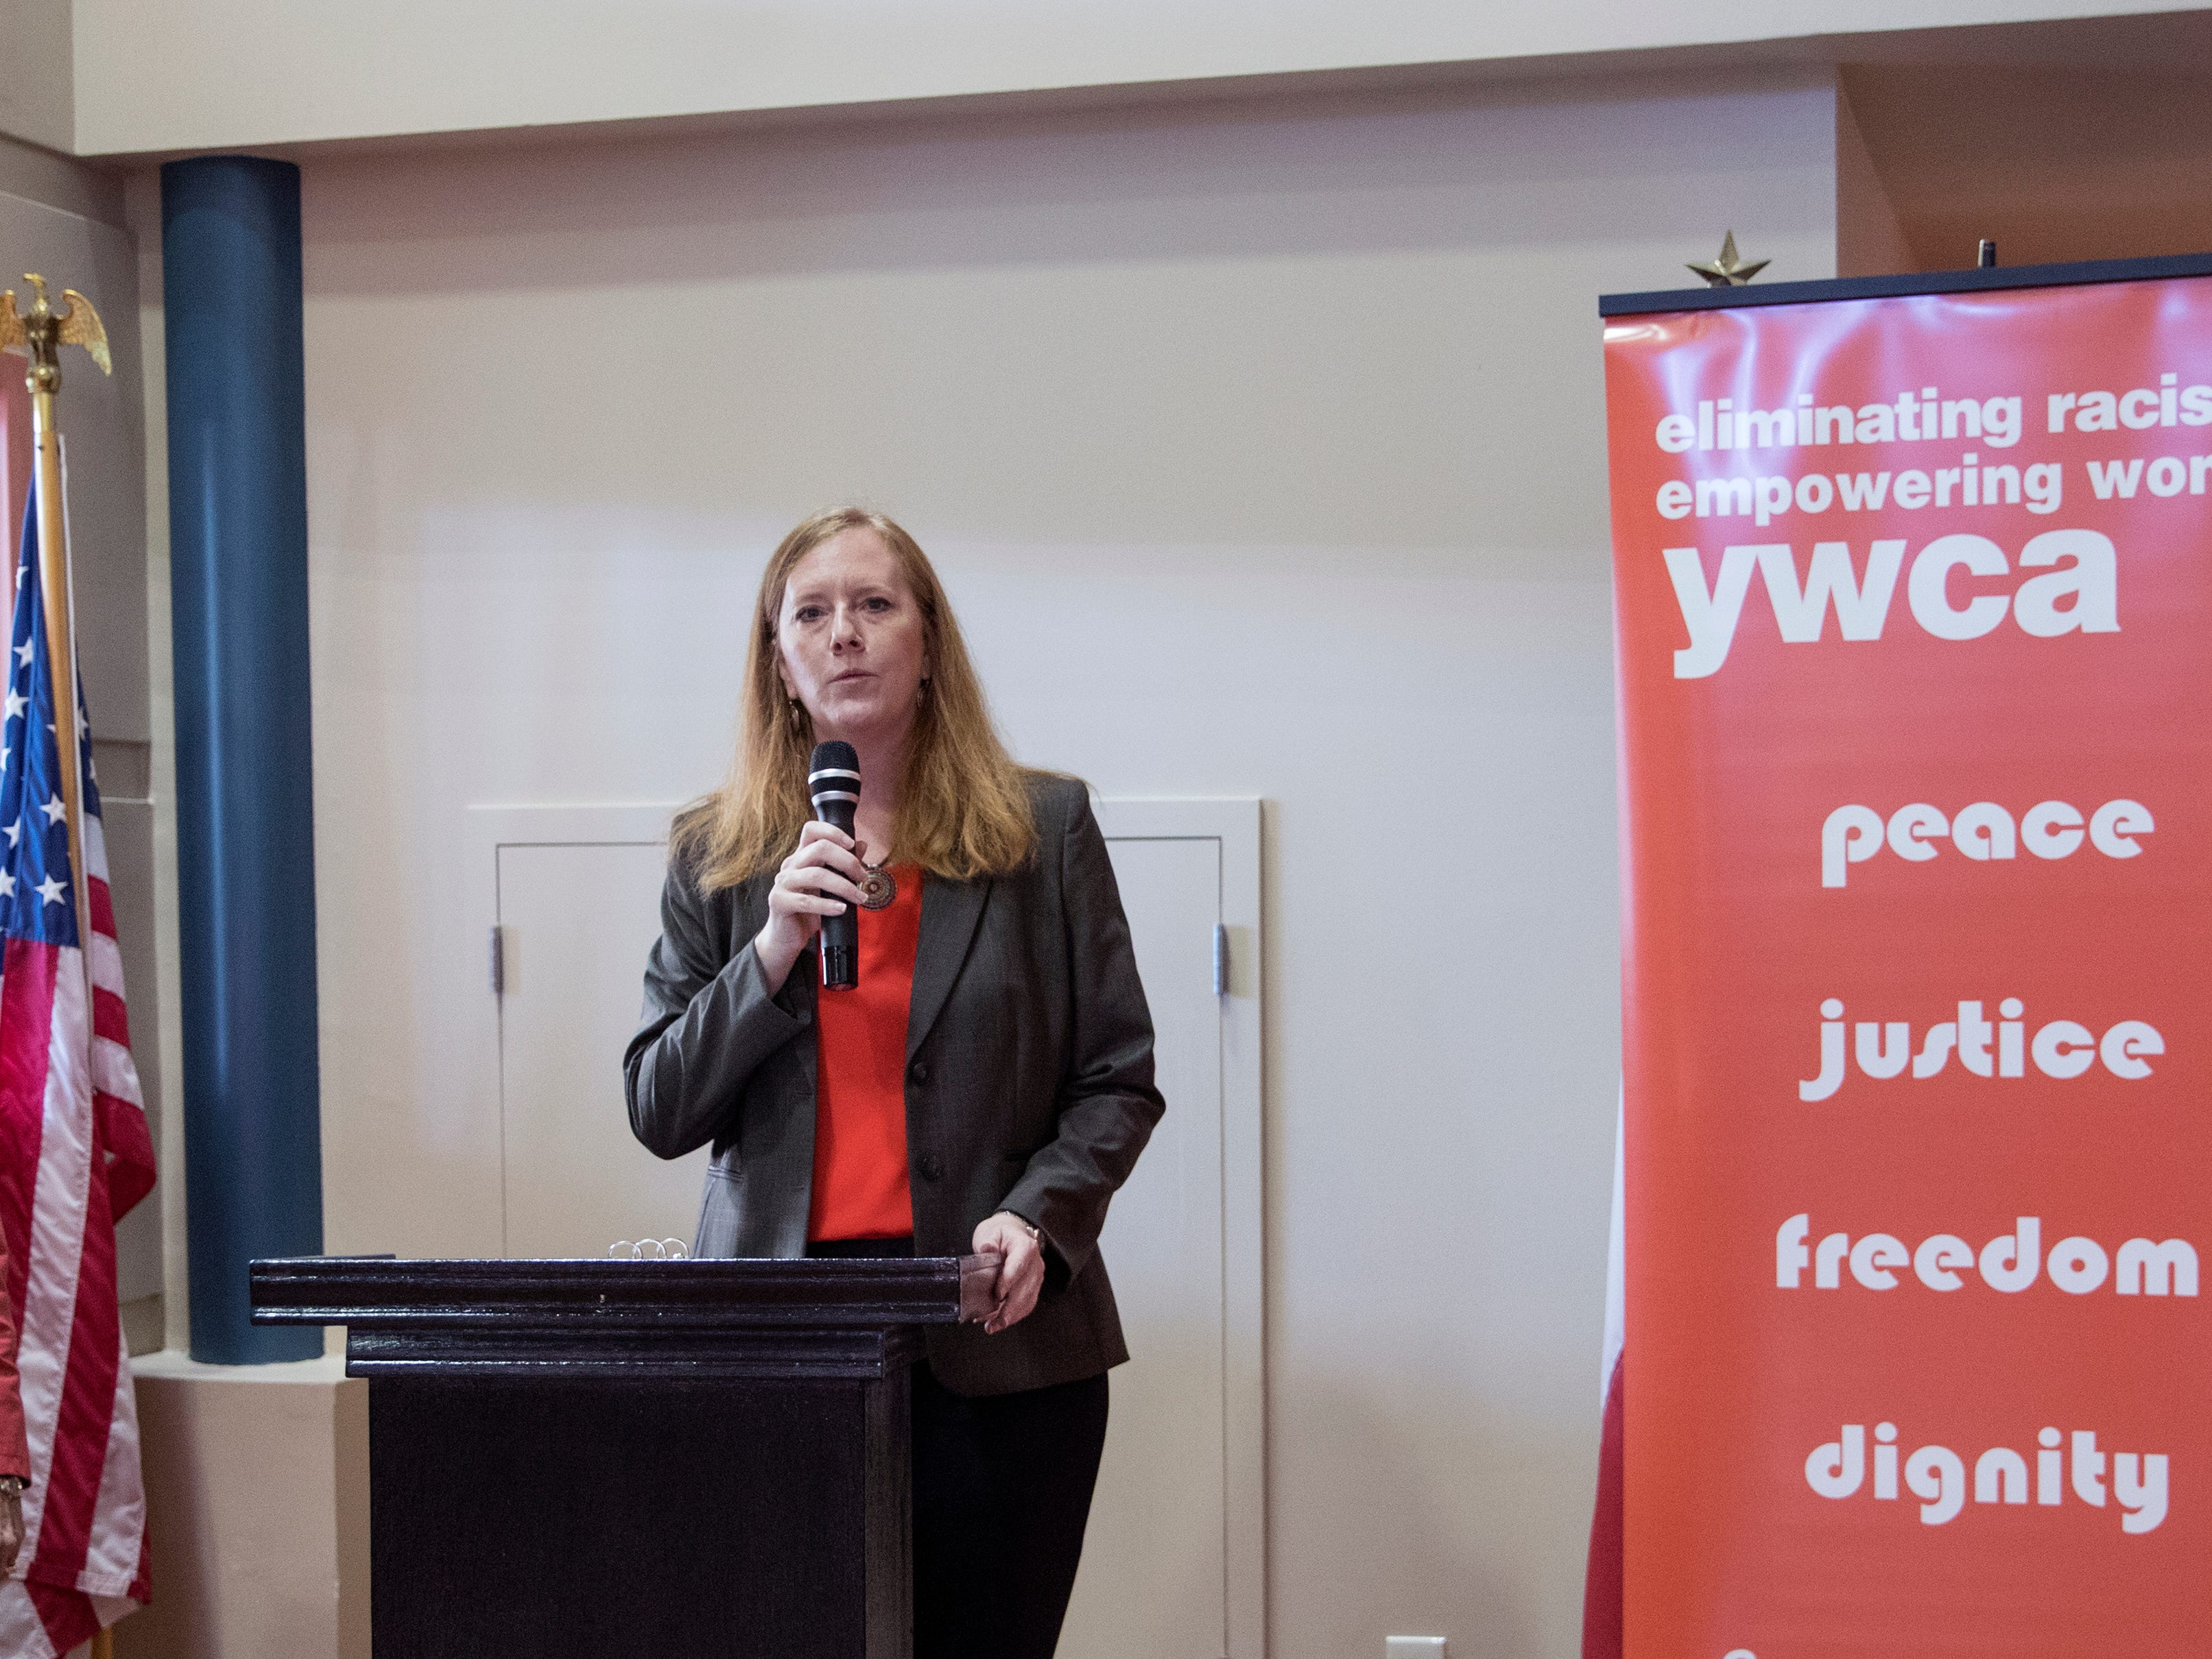 Nancy Wesson-Dodd (left), president and CEO of the YWCA and Cheryl Cain, president of the YWCA board of directors. speaks during the Y Women in Careers announcement at the YWCA on Thursday, January 10, 2019. Seven women were announced as honorees this year. Since 1979, 283 women have been honored.